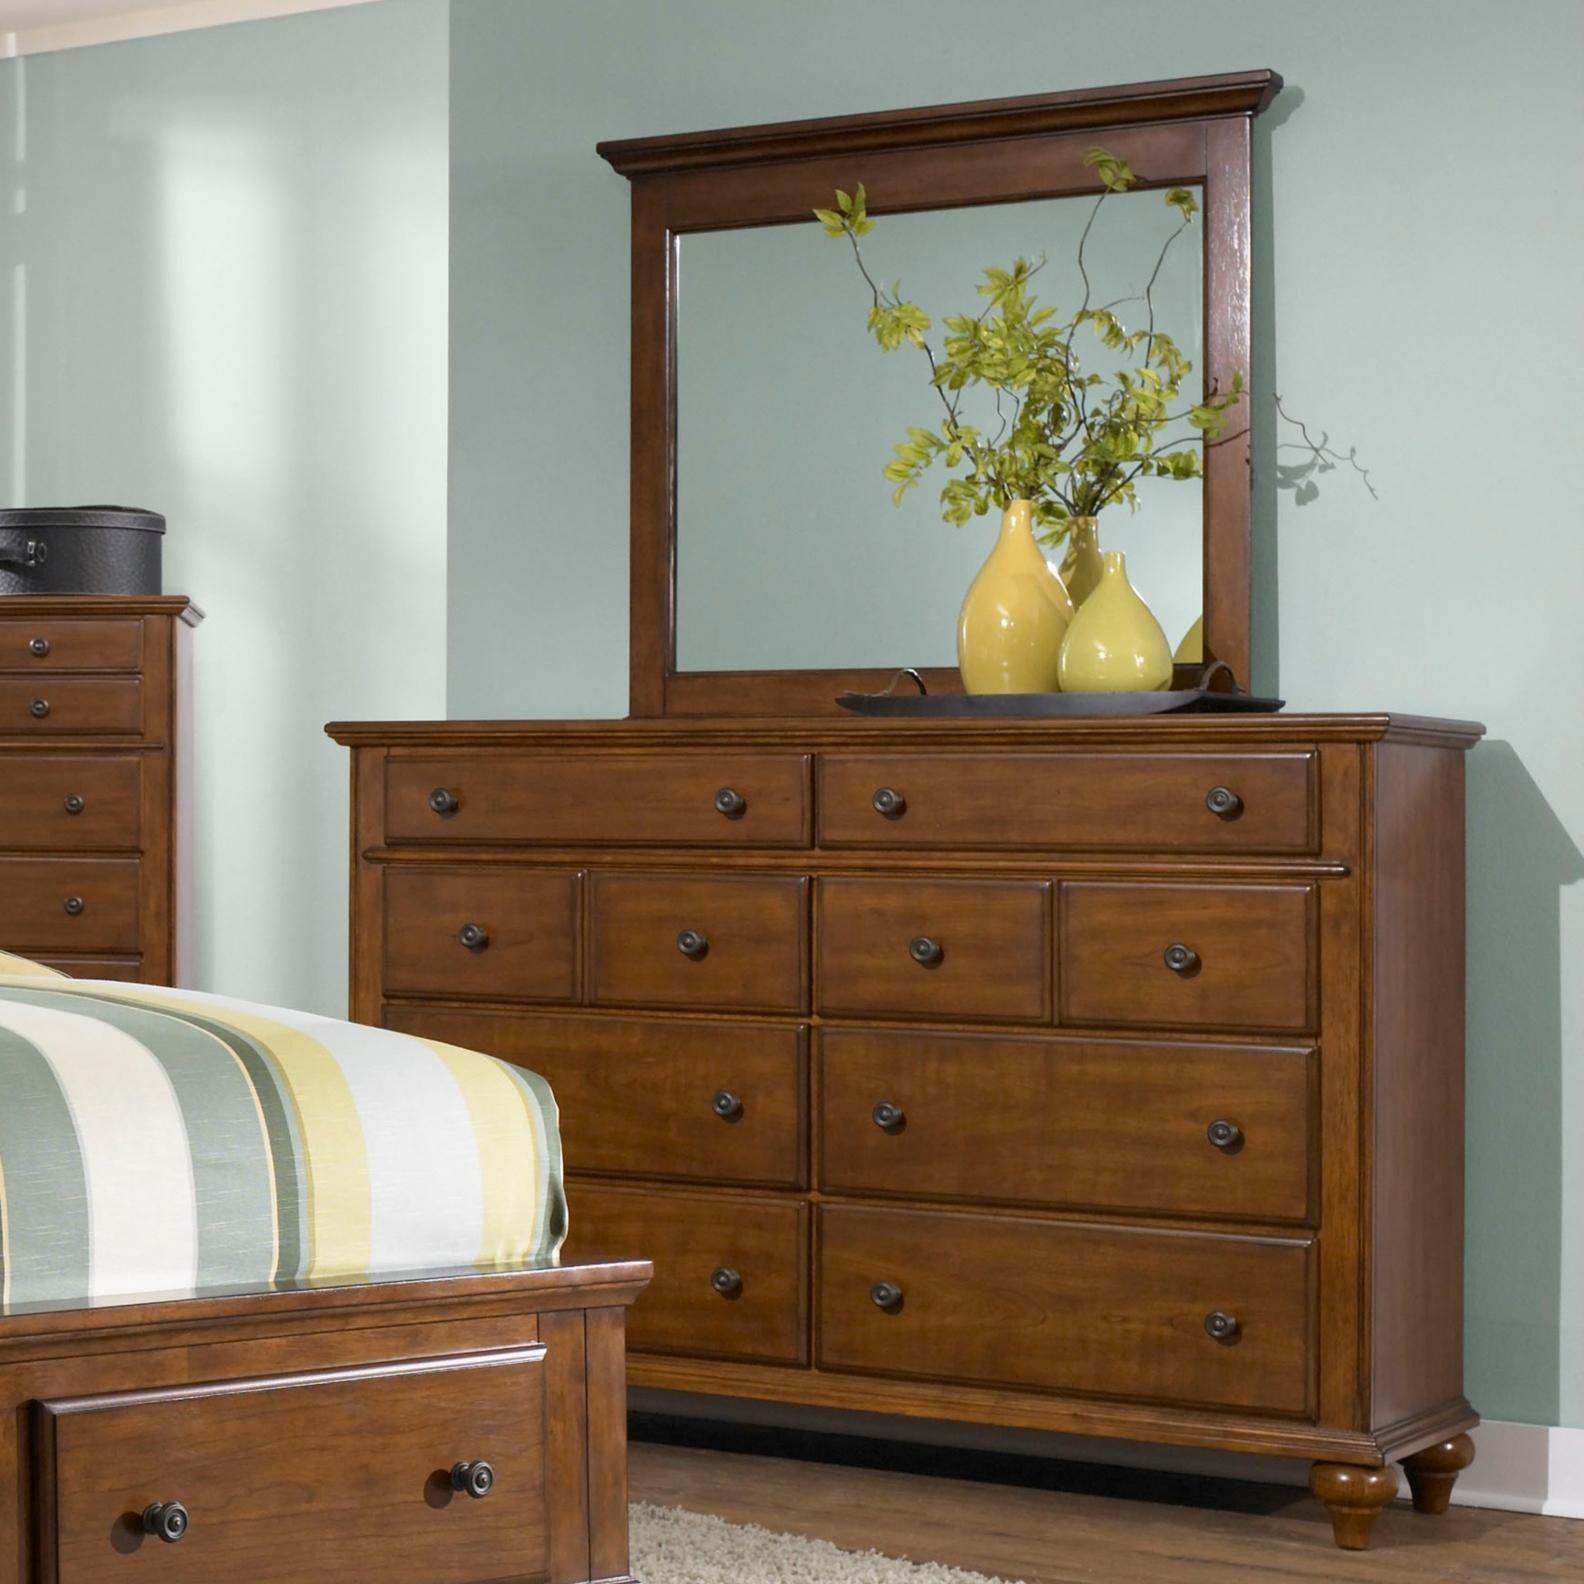 Broyhill Furniture Hayden Place Drawer Dresser and Lanscape Mirror - Item Number: 4648-230+238